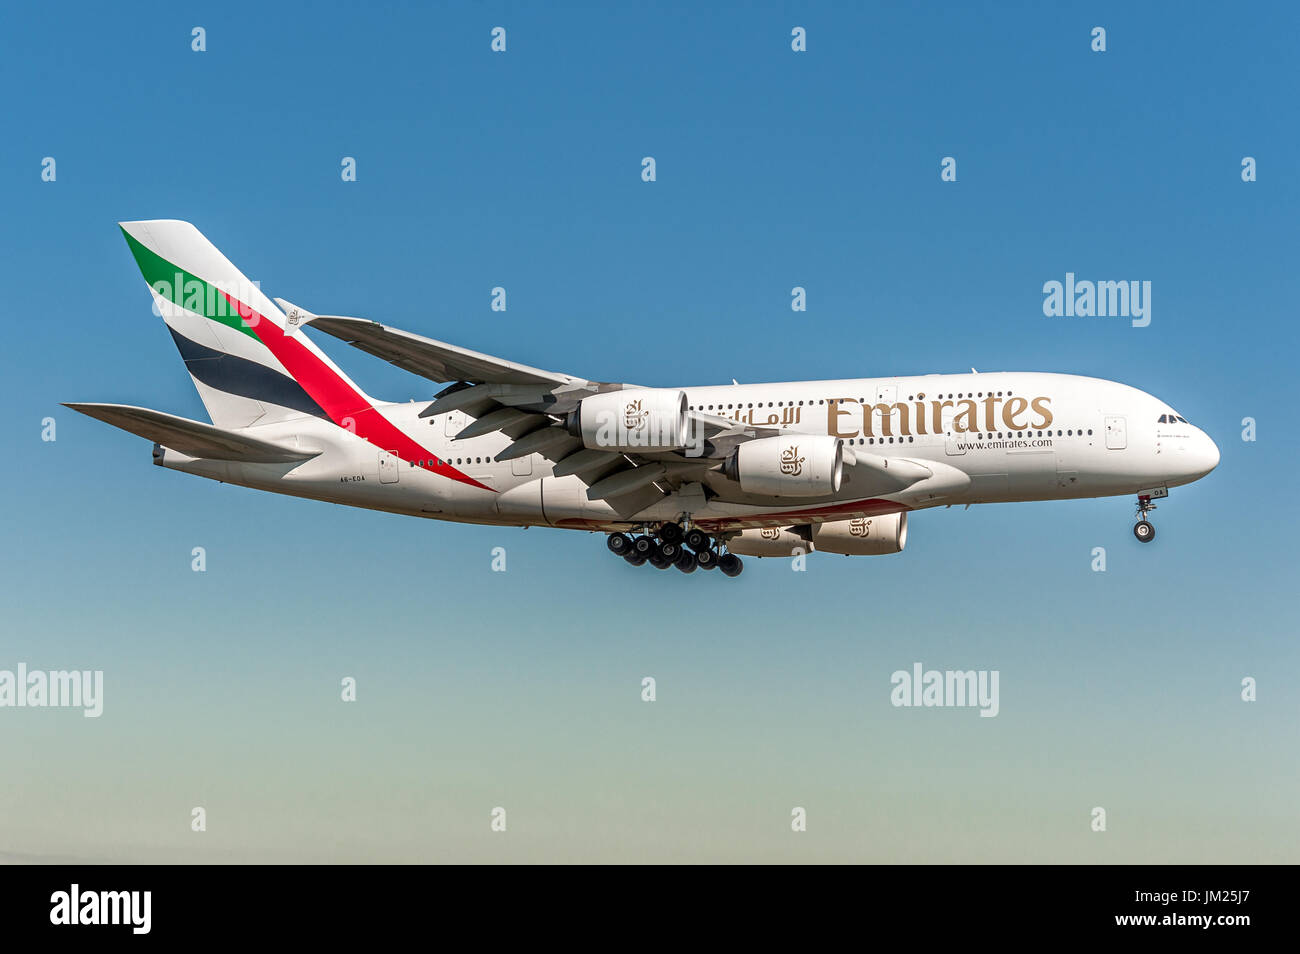 Emirates Airline Airbus A380 Landing at Kloten Zurich Airport, Switzerland. Biggest liner airplane of world. 4 jet engine and 2 layers for passenger. - Stock Image